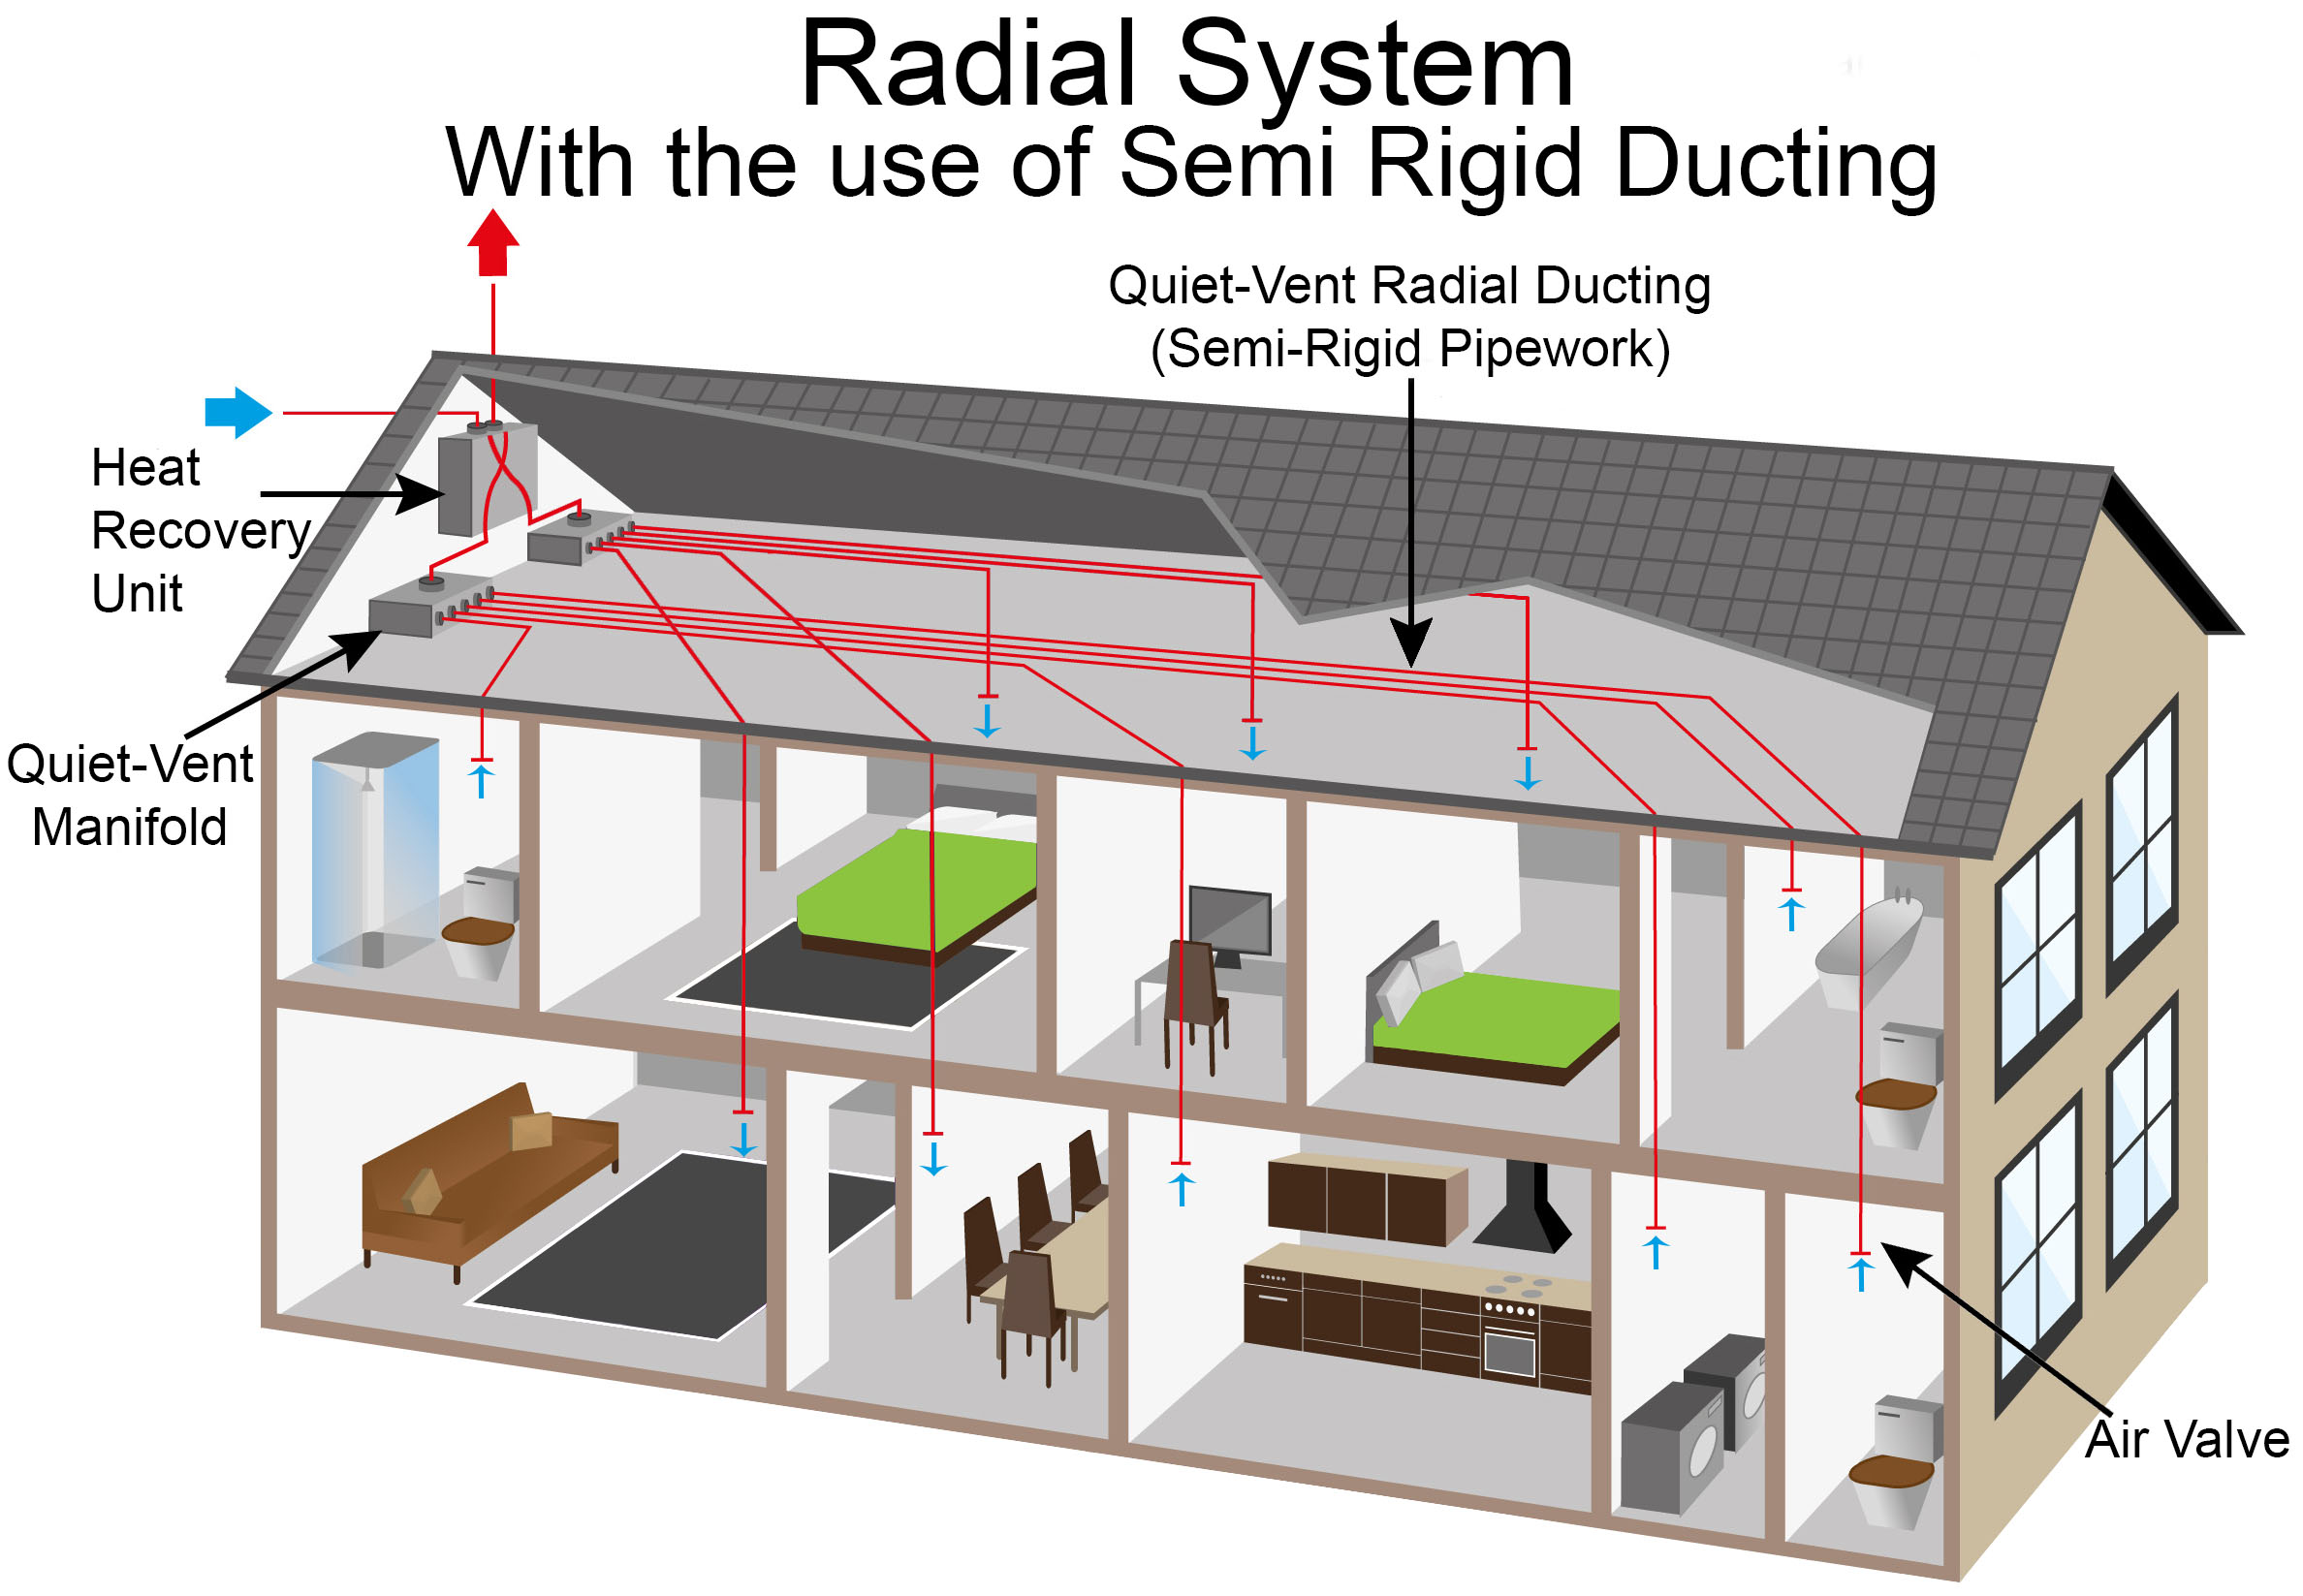 Radial System house illustration